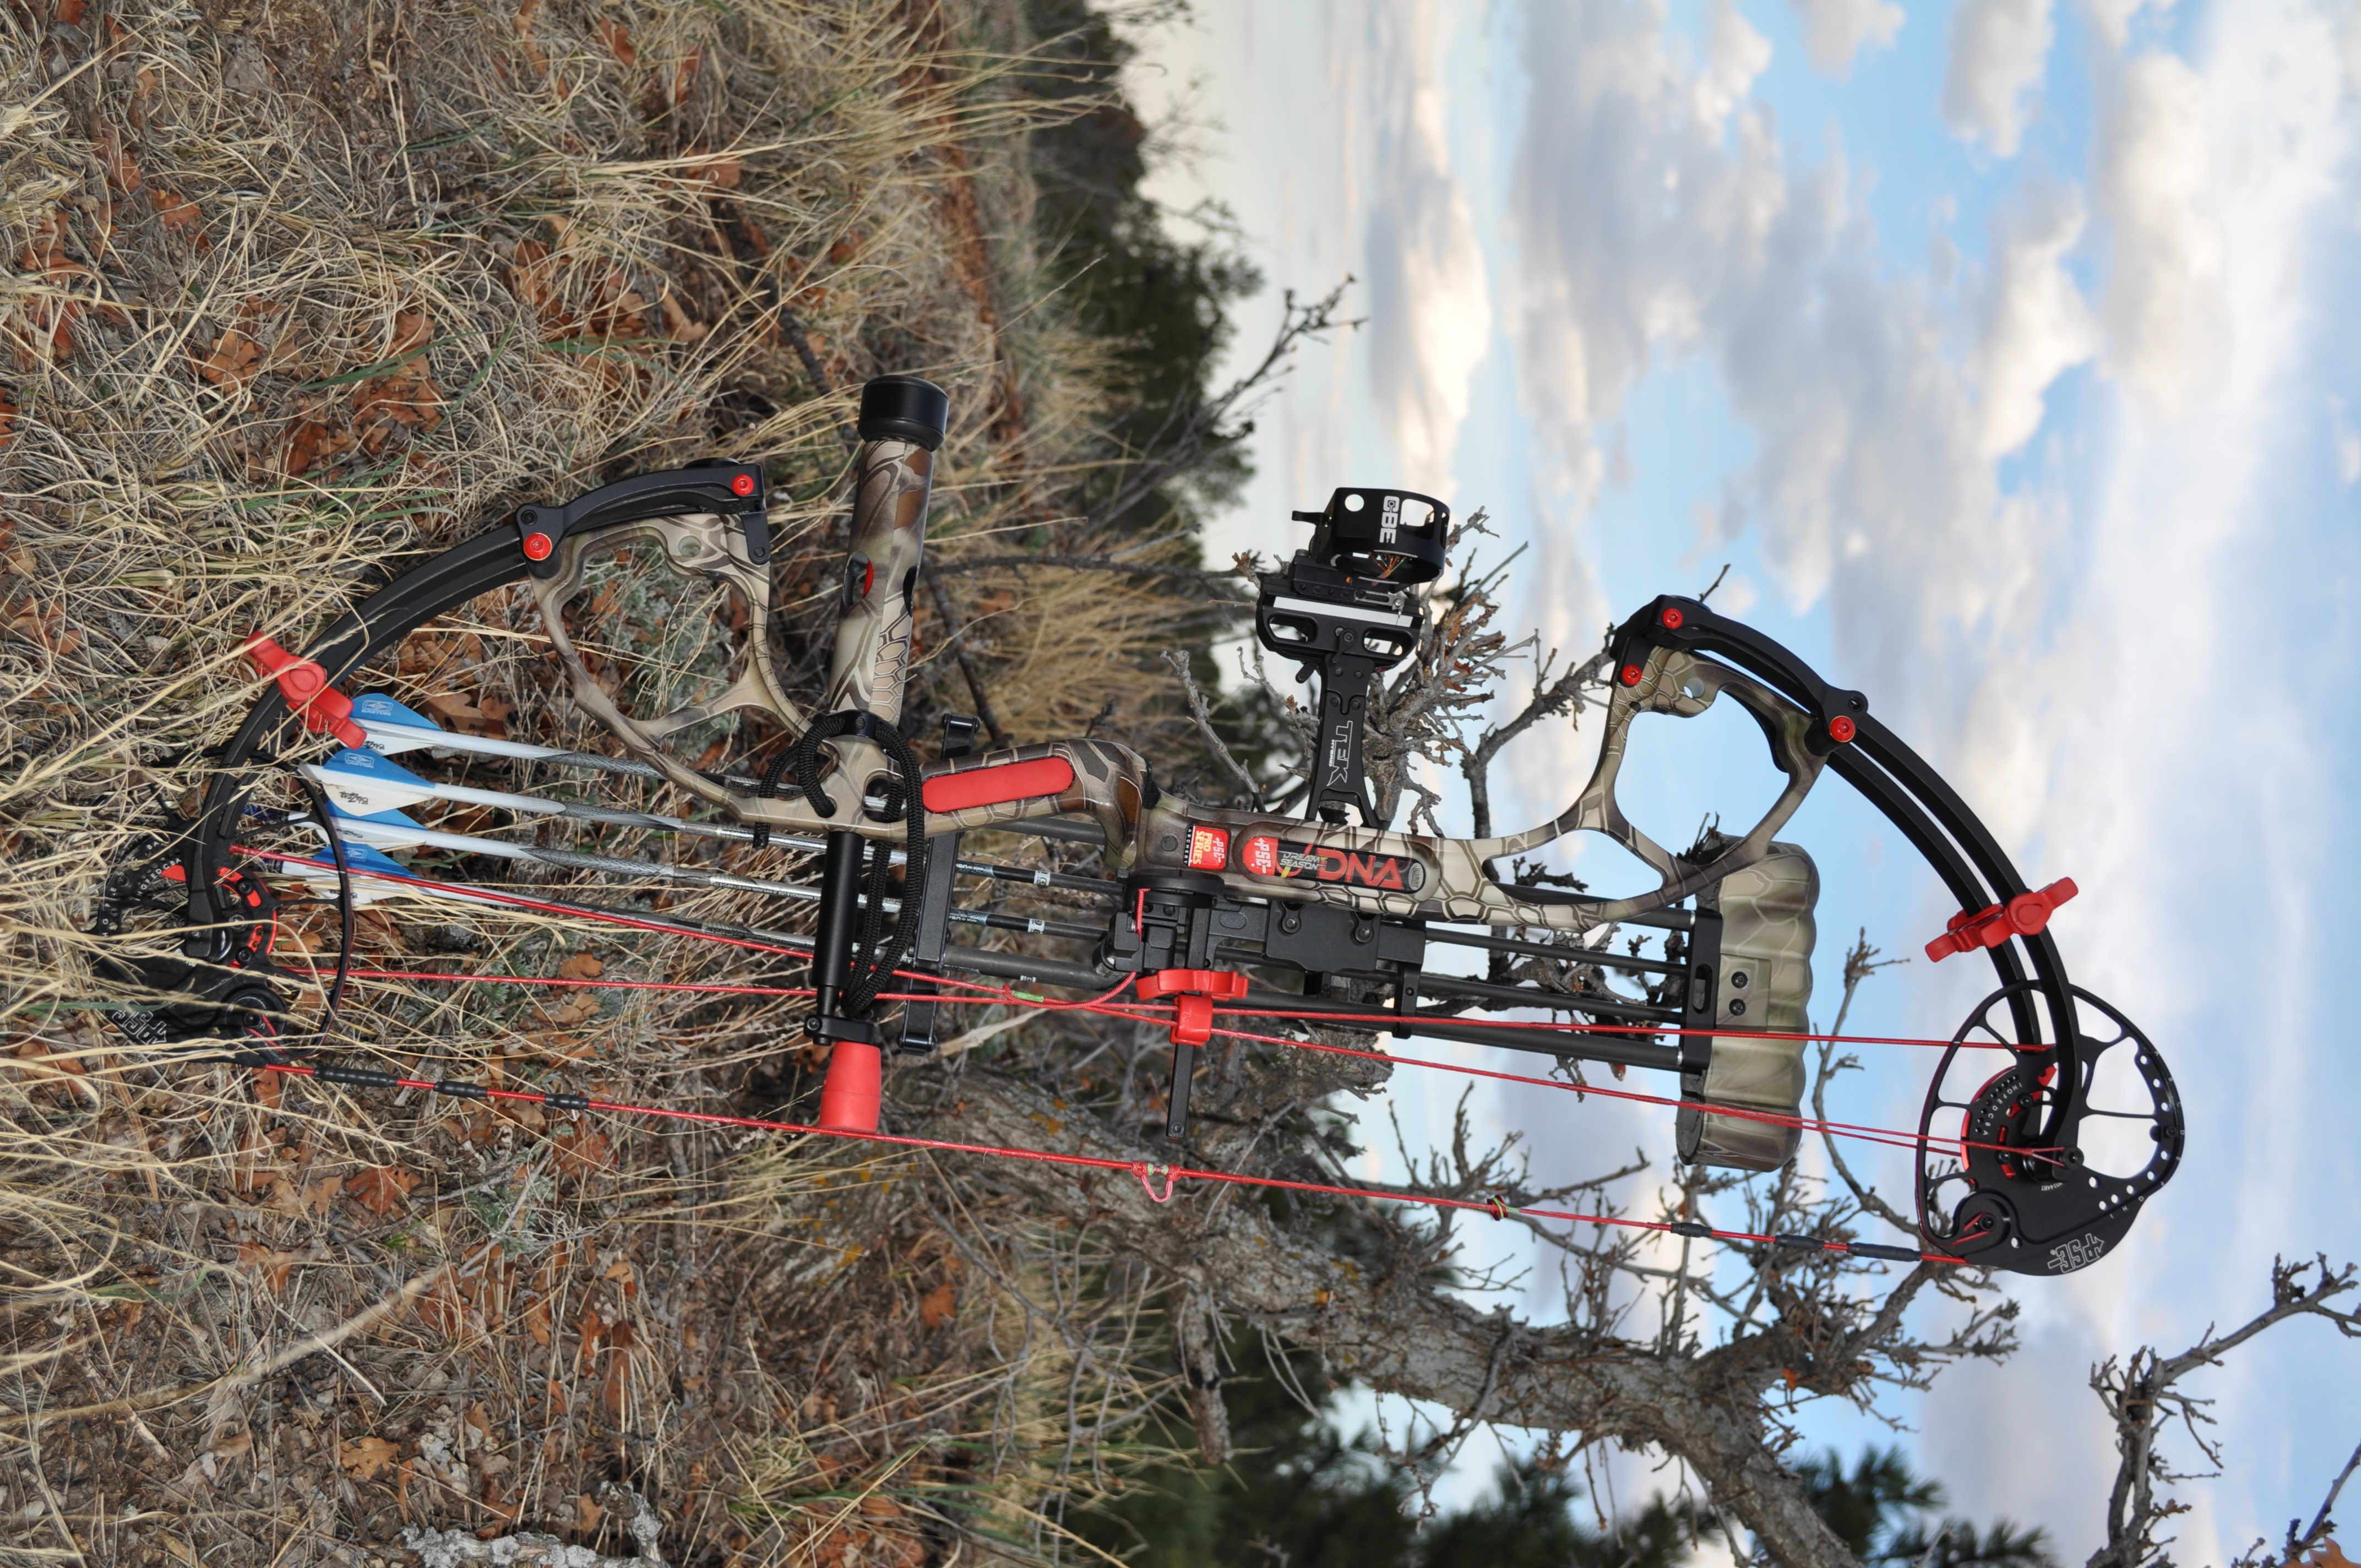 Pse Archery Wallpaper Bow Hunting Set-up By Pse's Jared - Pse Bow Hunting - HD Wallpaper